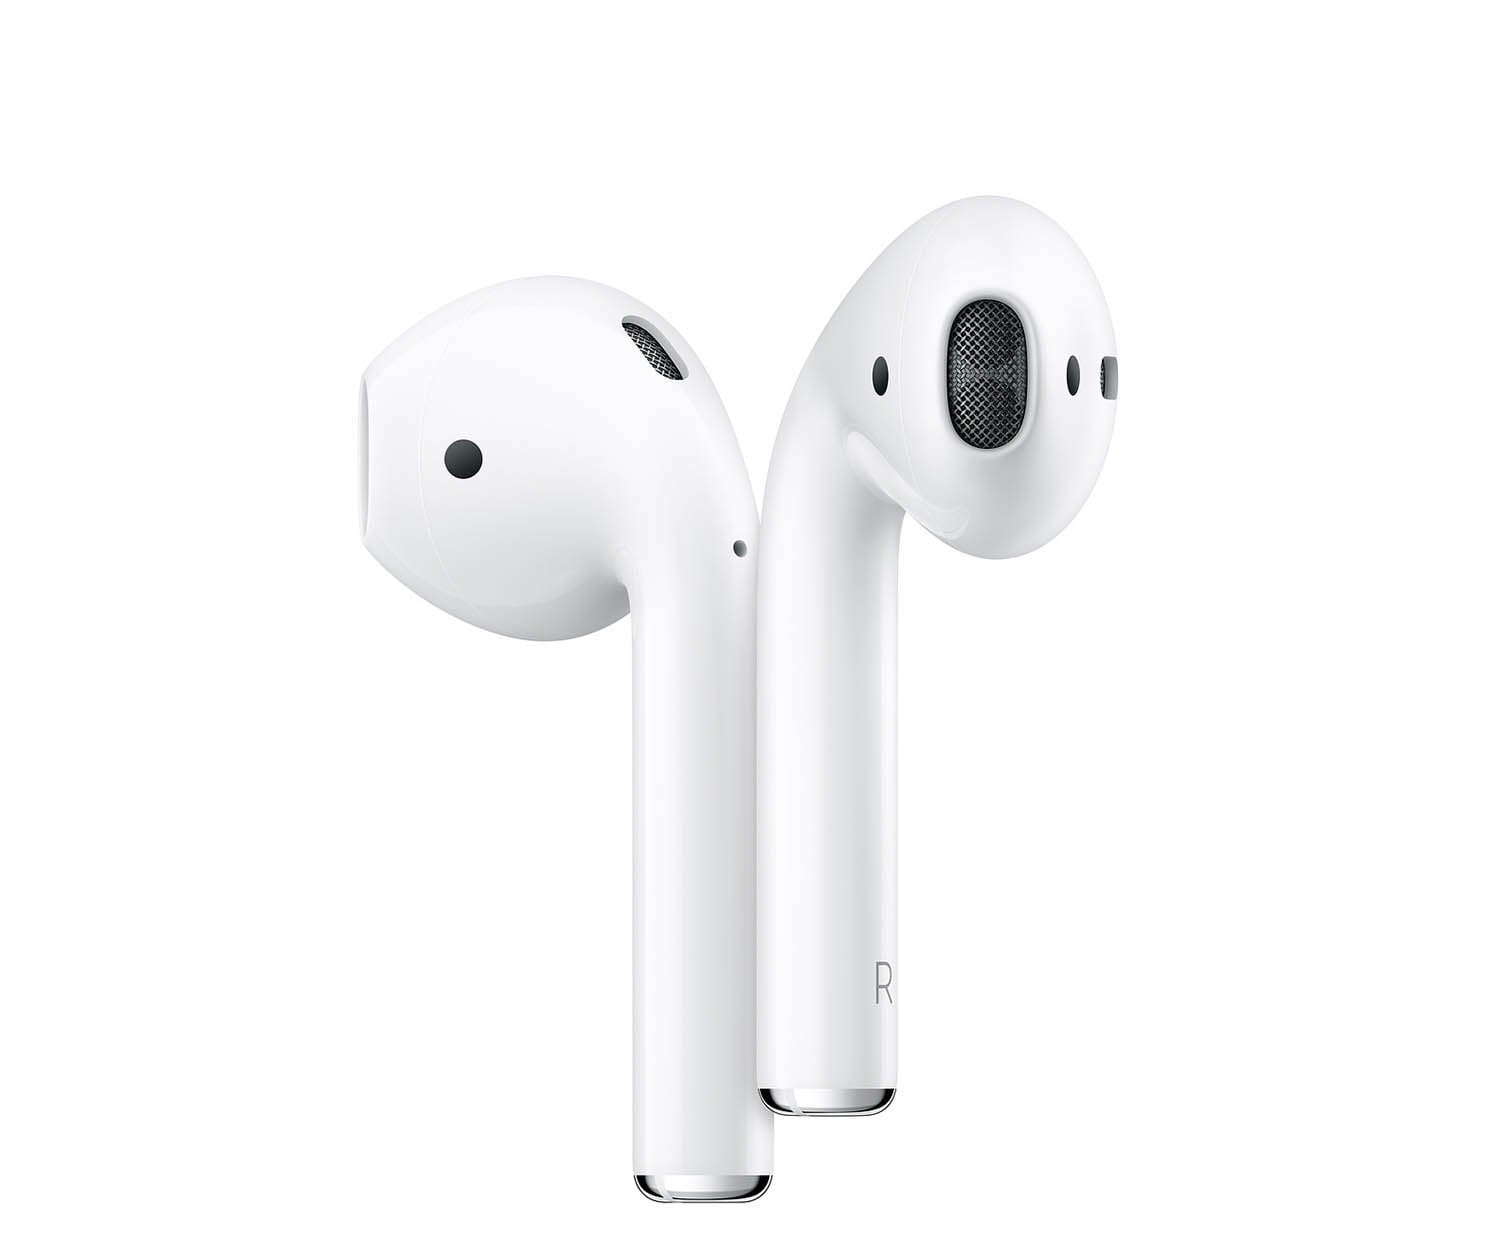 apple airpods 2 generation mit kabellosem ladecase. Black Bedroom Furniture Sets. Home Design Ideas